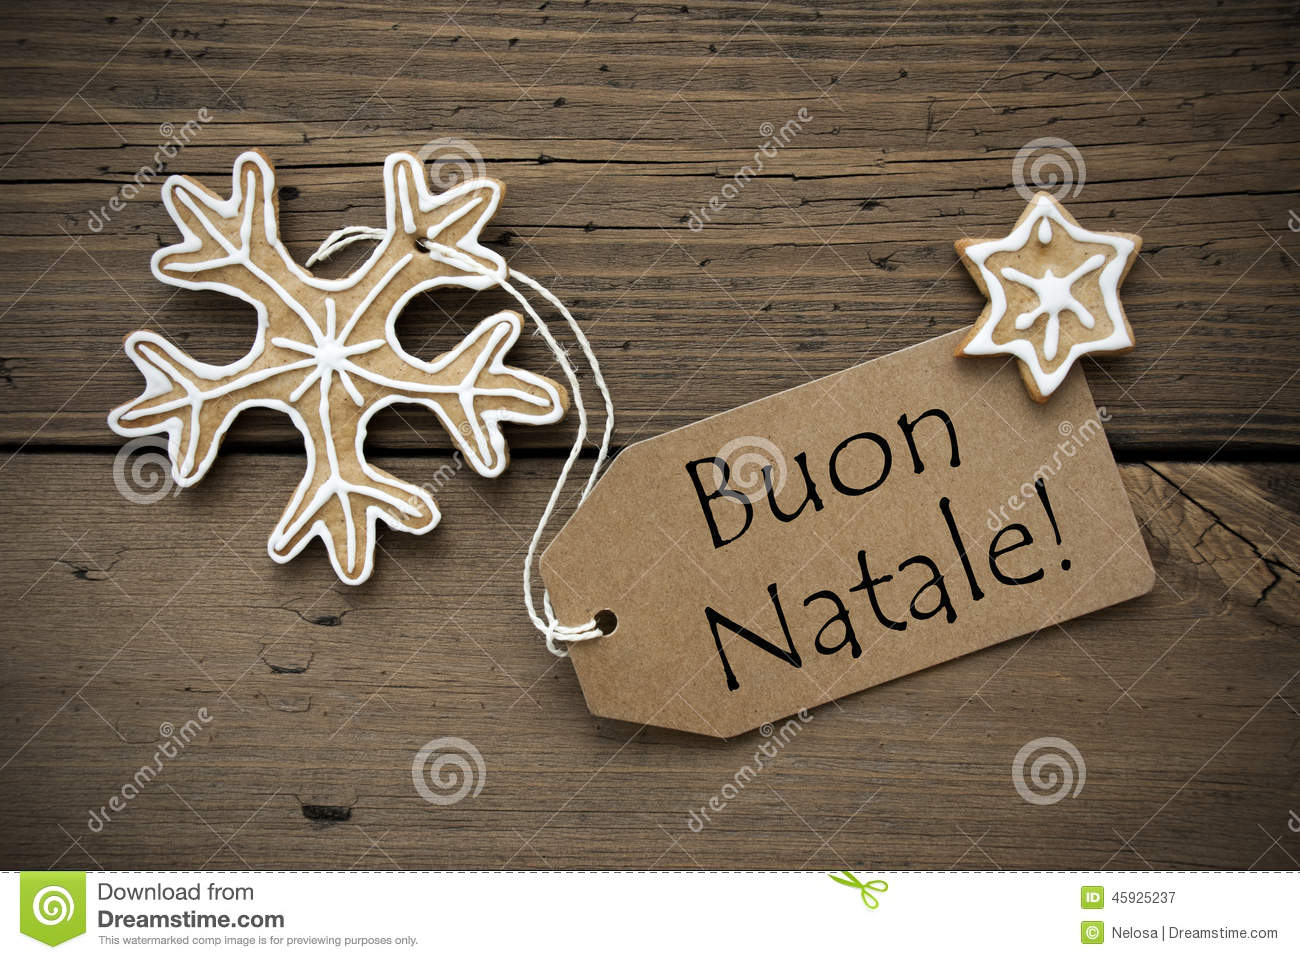 Italian christmas greetings with ginger breads stock image image italian christmas greetings with ginger breads kristyandbryce Images